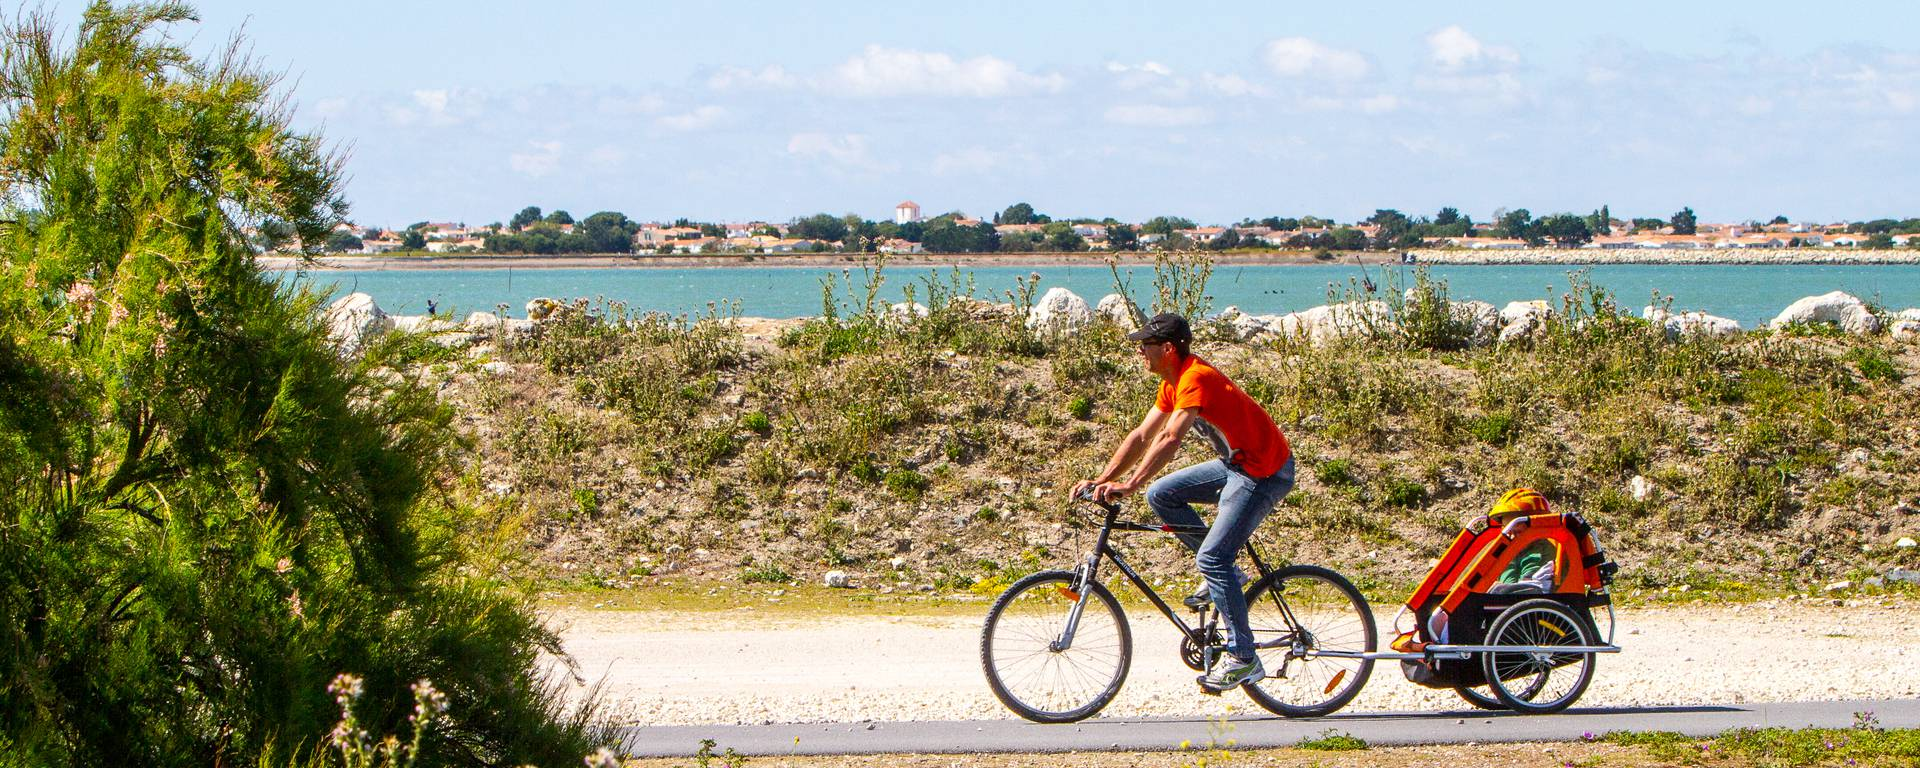 The bike paths on Île de Ré by François Blanchard